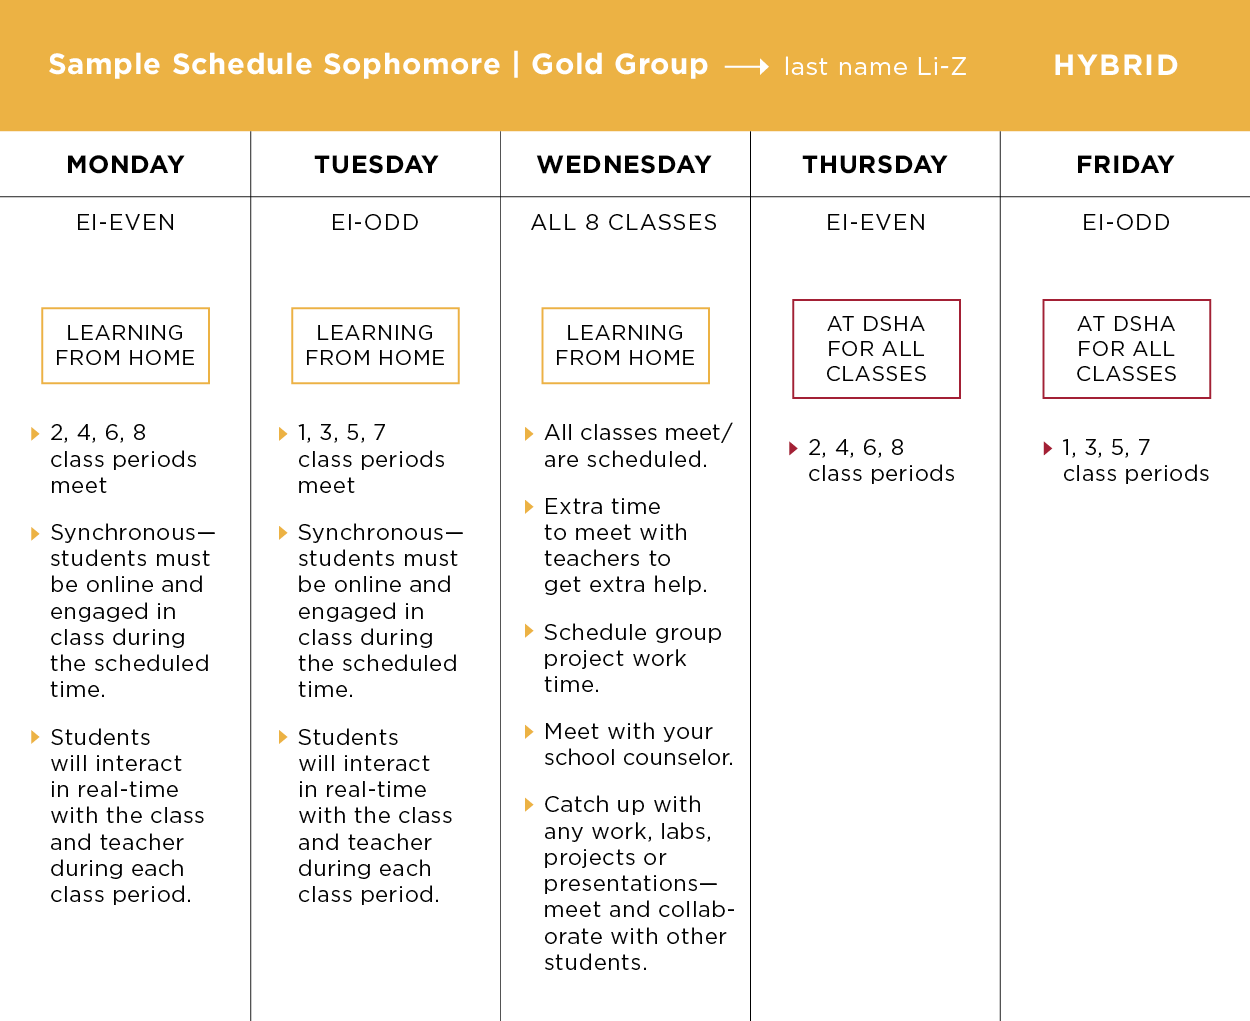 Click the arrow to view Red and Gold Group hybrid sample schedules.